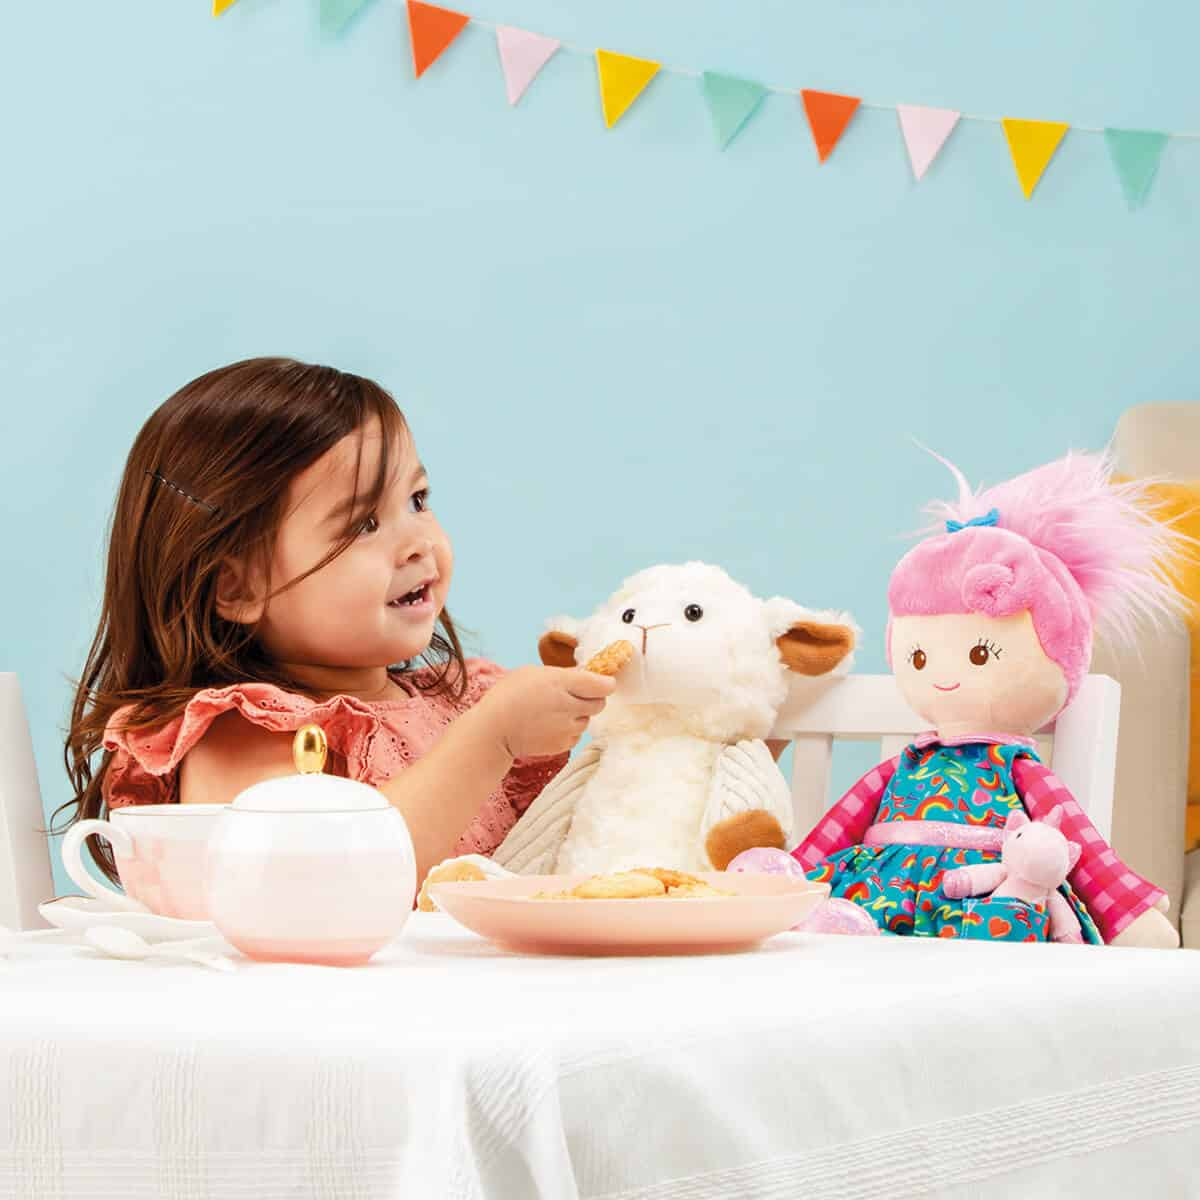 SCENTSY BUDDIES & KIDS PRODUCTS